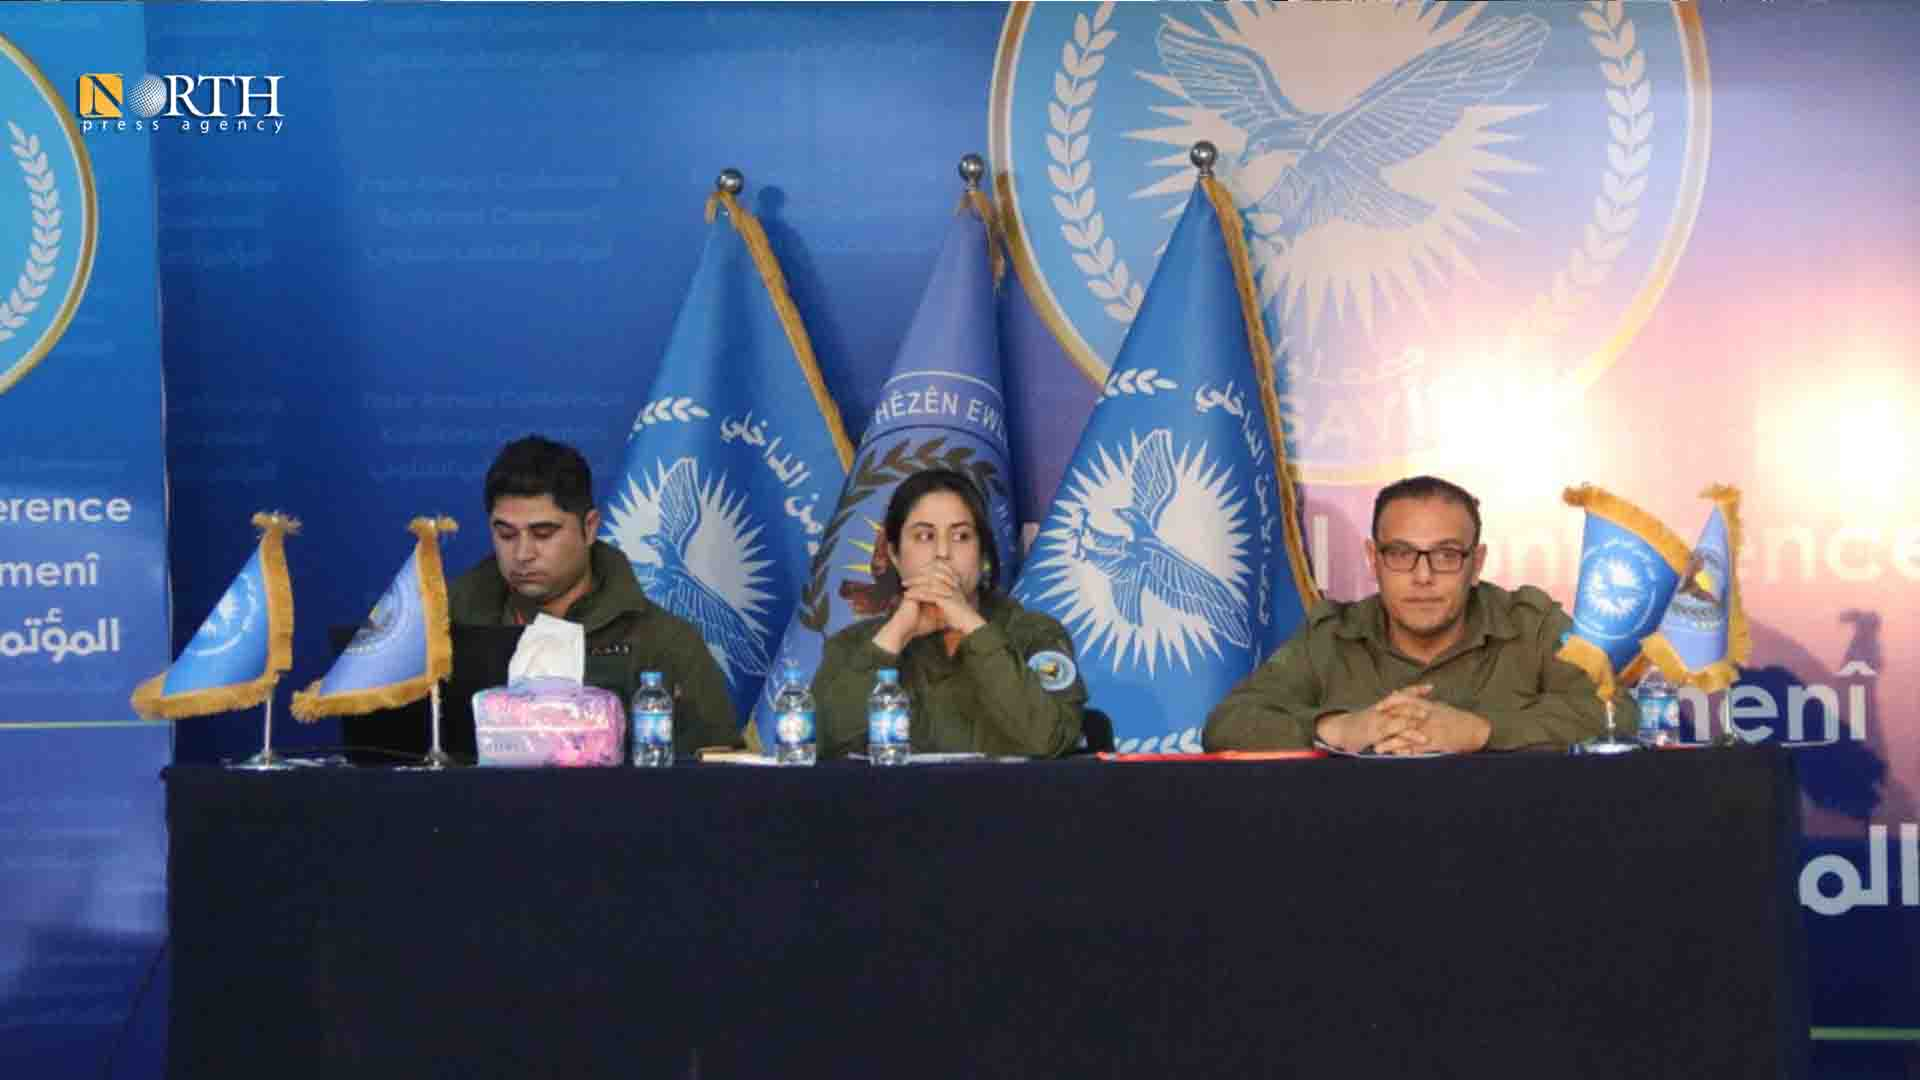 Annual conference of the Internal Security Forces (Asayish) in Rimelan – North Press